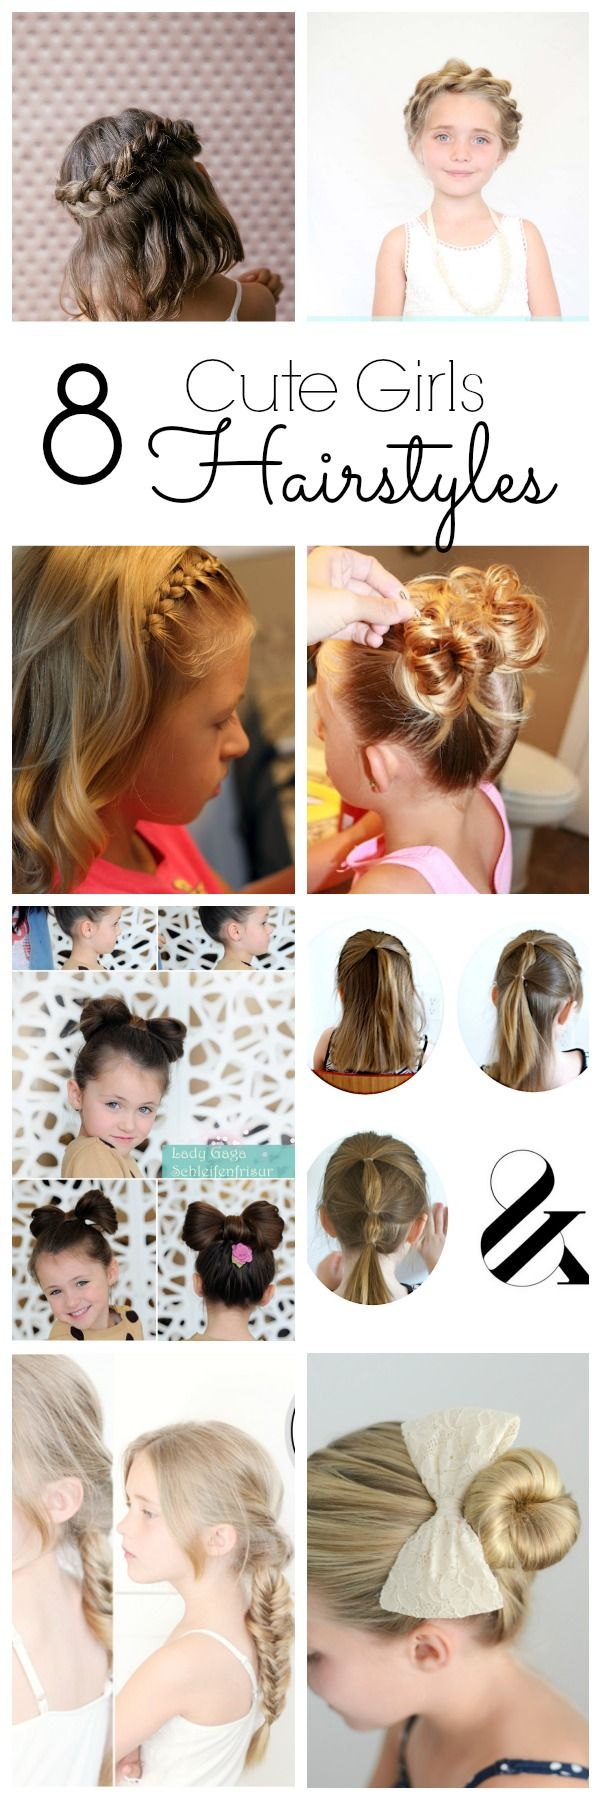 8 super cute girl's hairstyles - These are so cute!